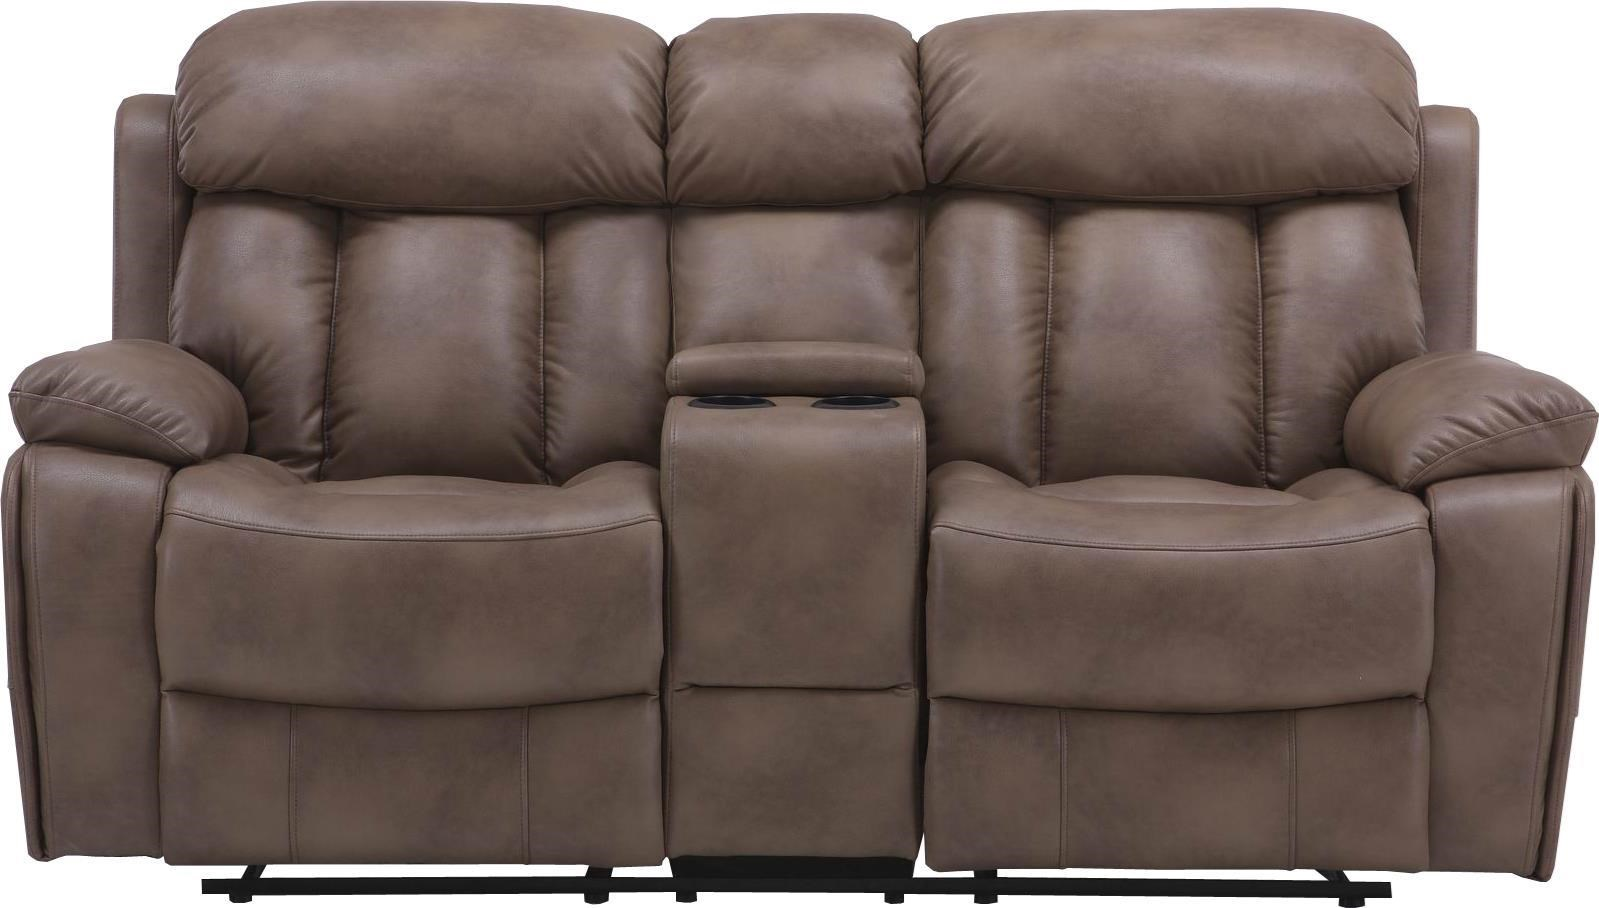 Parker House Baron Entertainment Reclining Loveseat - Item Number: 358753074